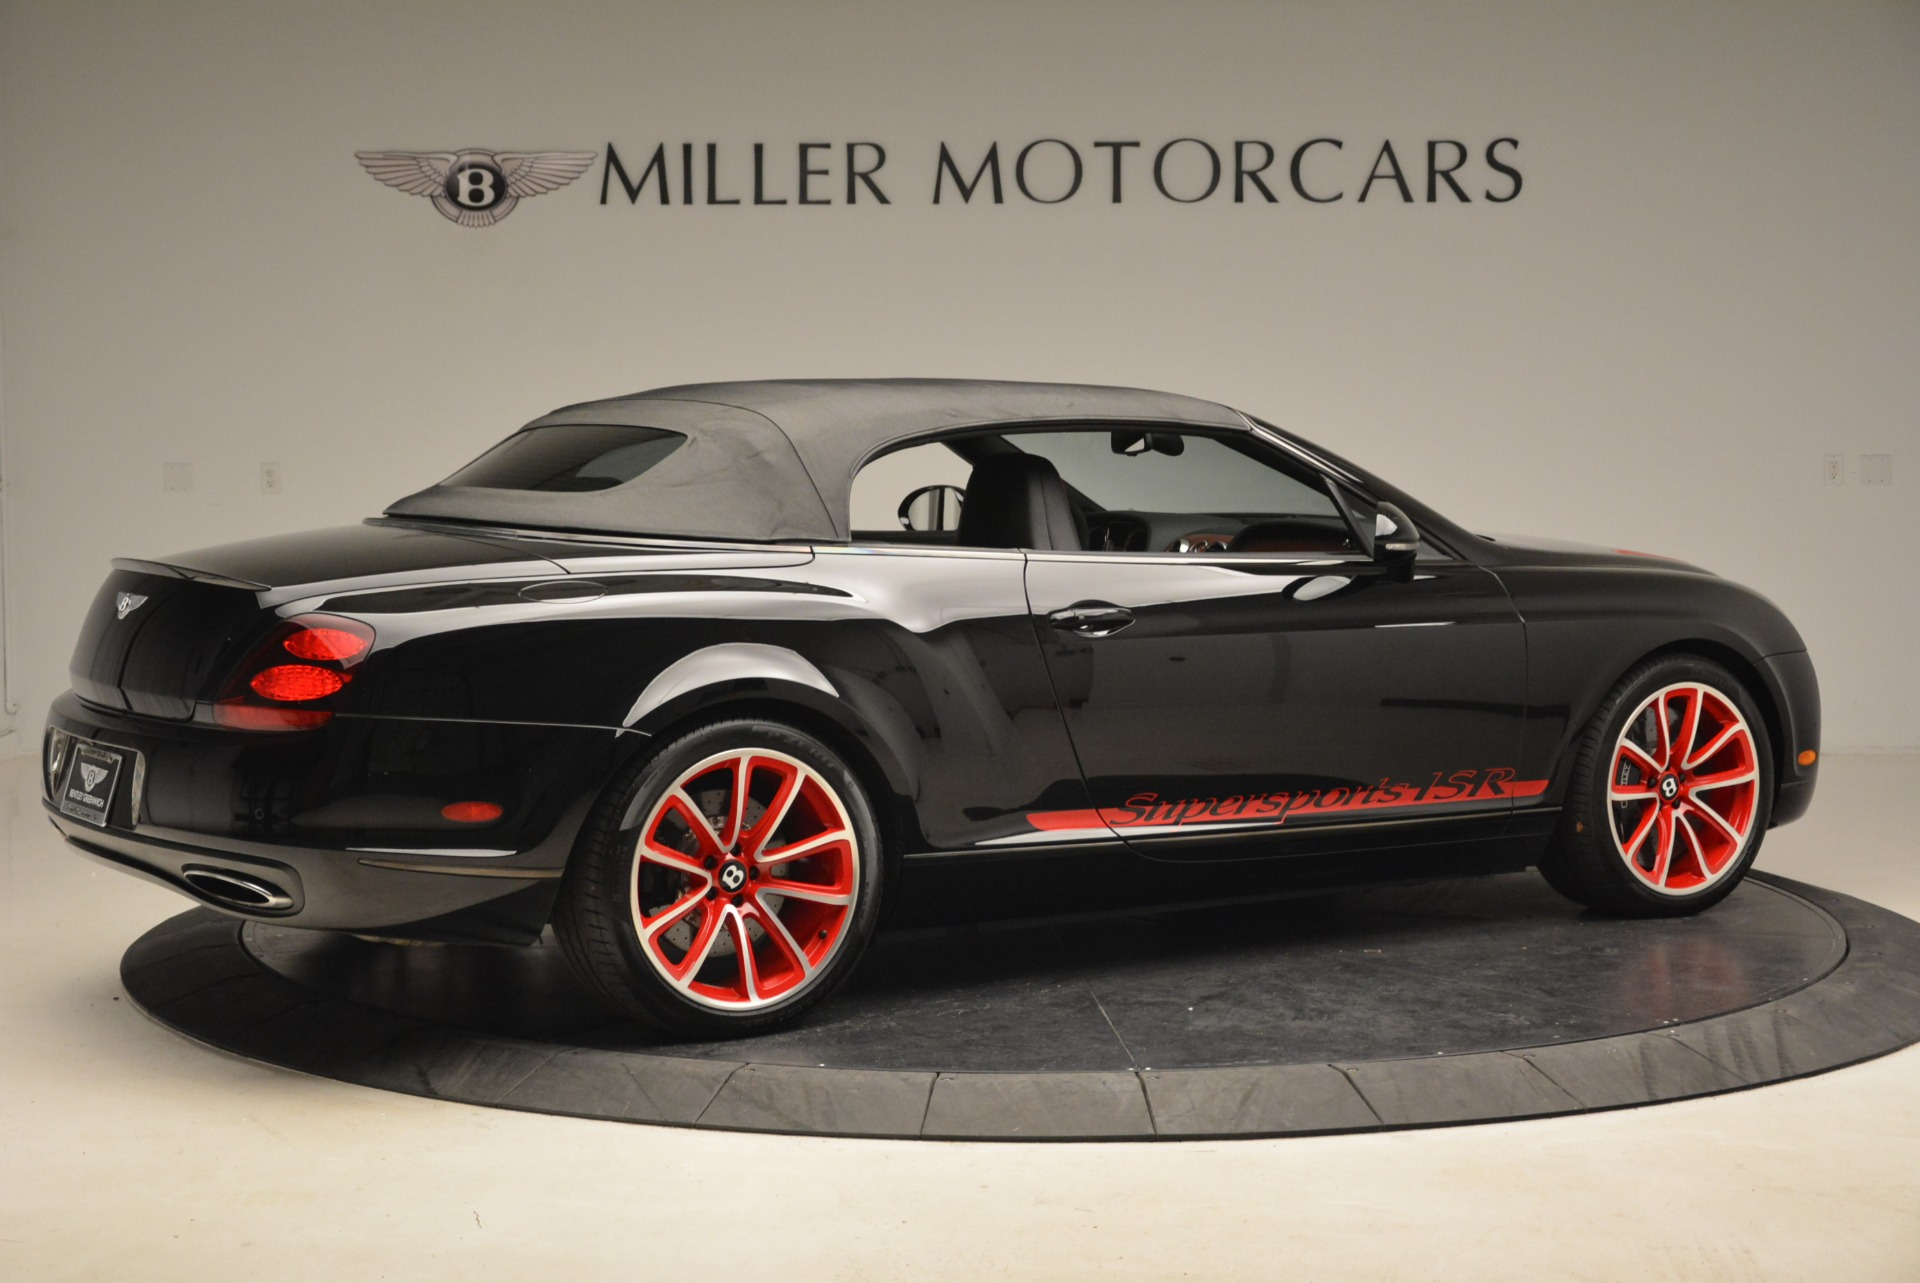 Used 2013 Bentley Continental GT Supersports Convertible ISR For Sale In Greenwich, CT 2151_p21